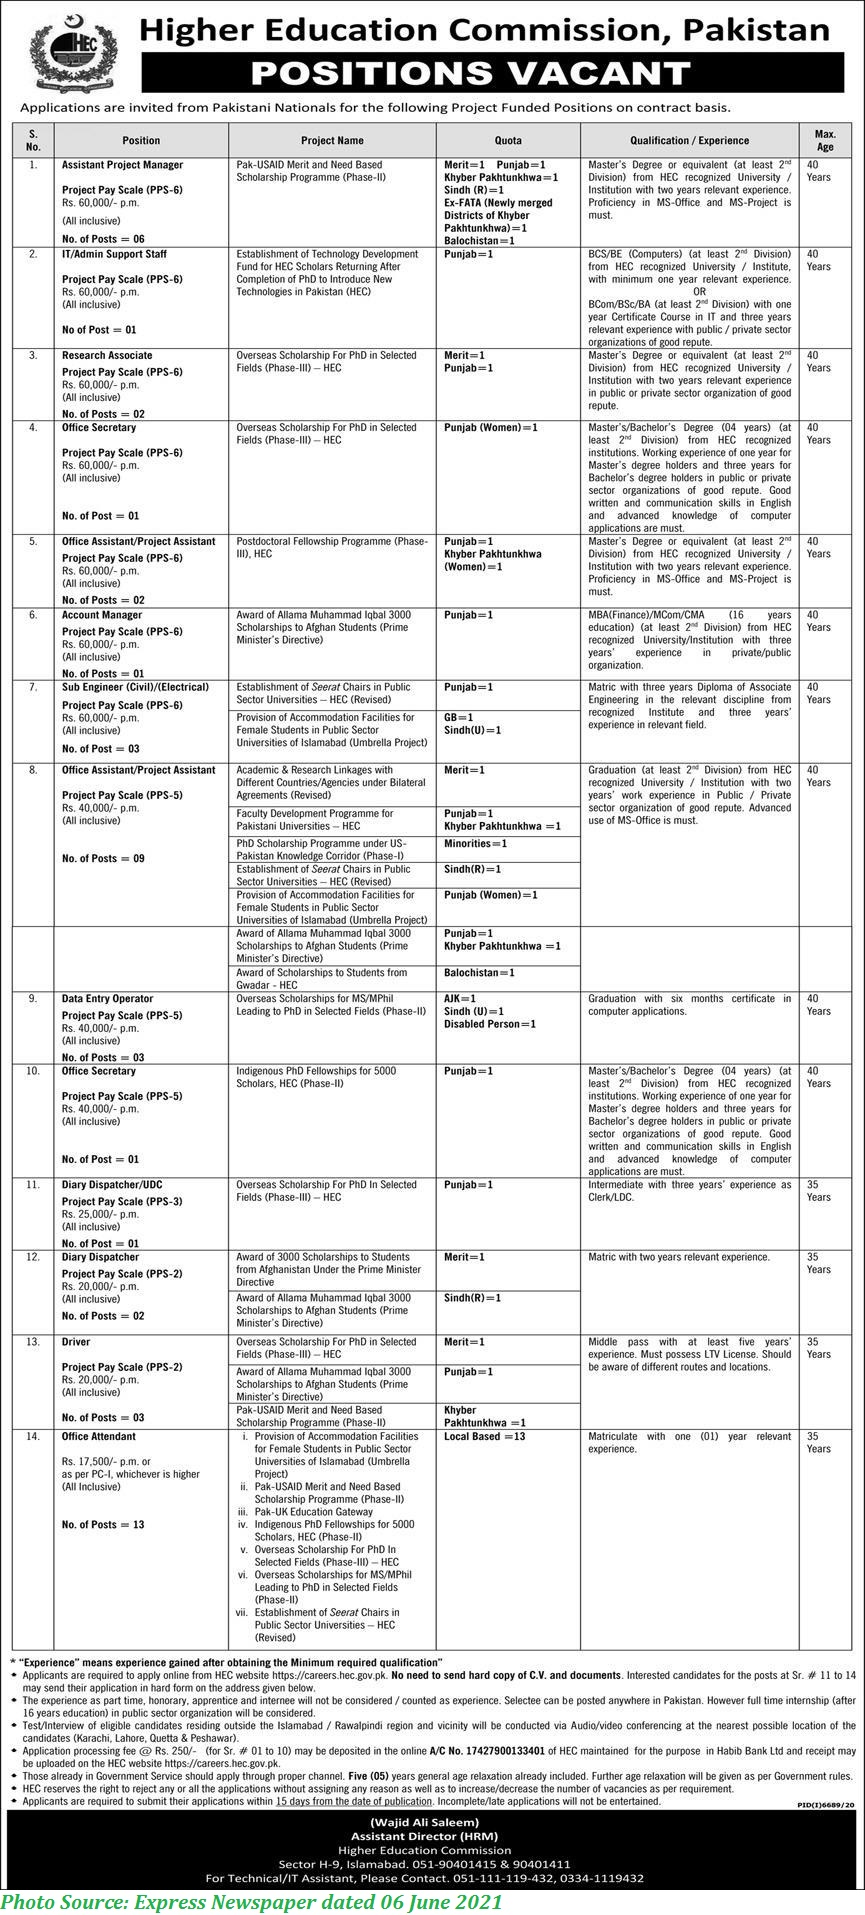 HEC Jobs 2021 - Latest Jobs in Higher Education Commission of Pakistan 2021 Apply Online